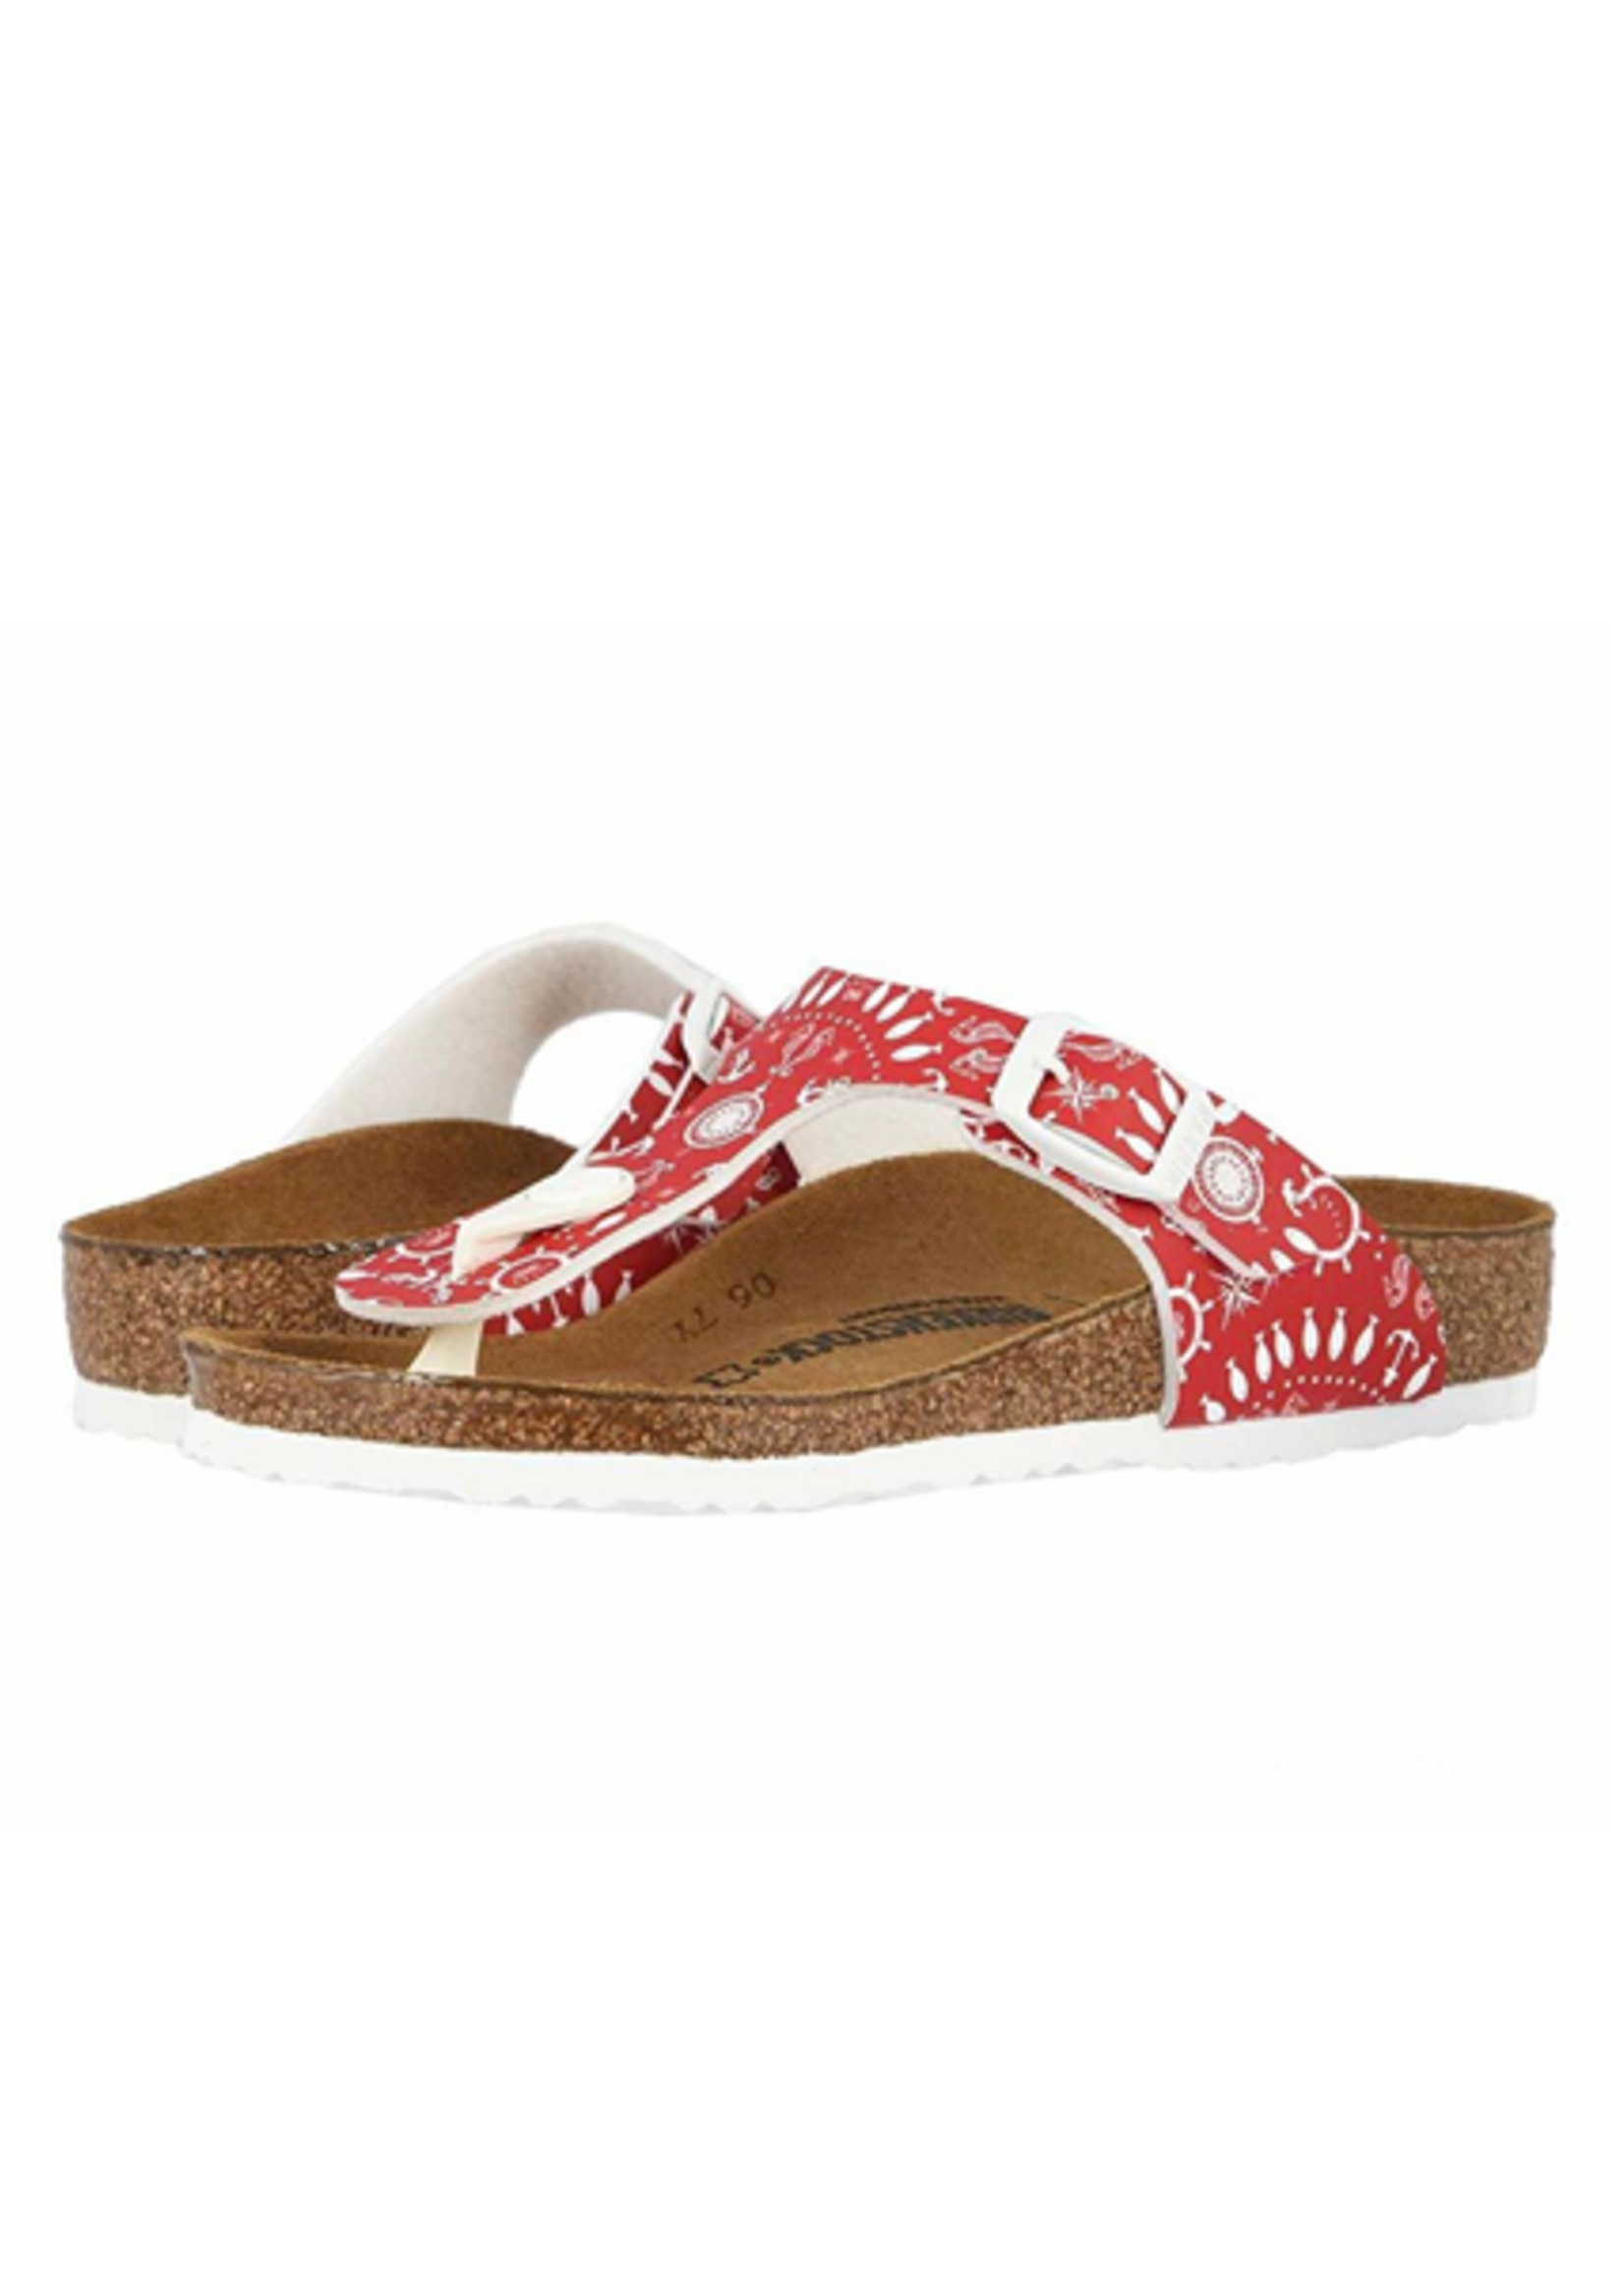 Birkenstock Gizeh -  Birko-Flor in Nautical Print Red (Classic Footbed - Suede Lined)